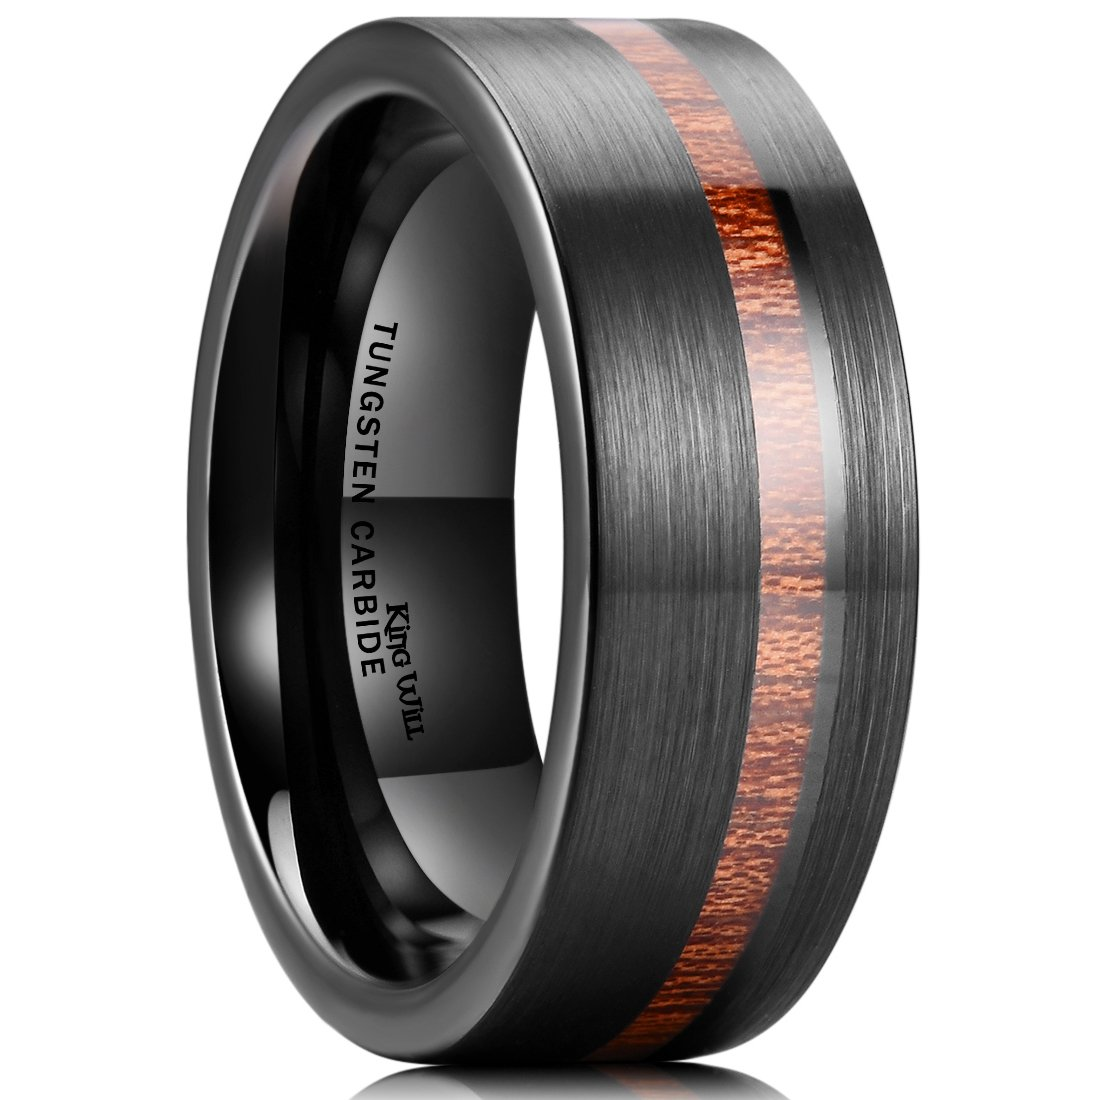 King Will Nature 8mm Wood Inlay Polish Unisex Black Tungsten Carbide Wedding Band Engagement Ring 10.5